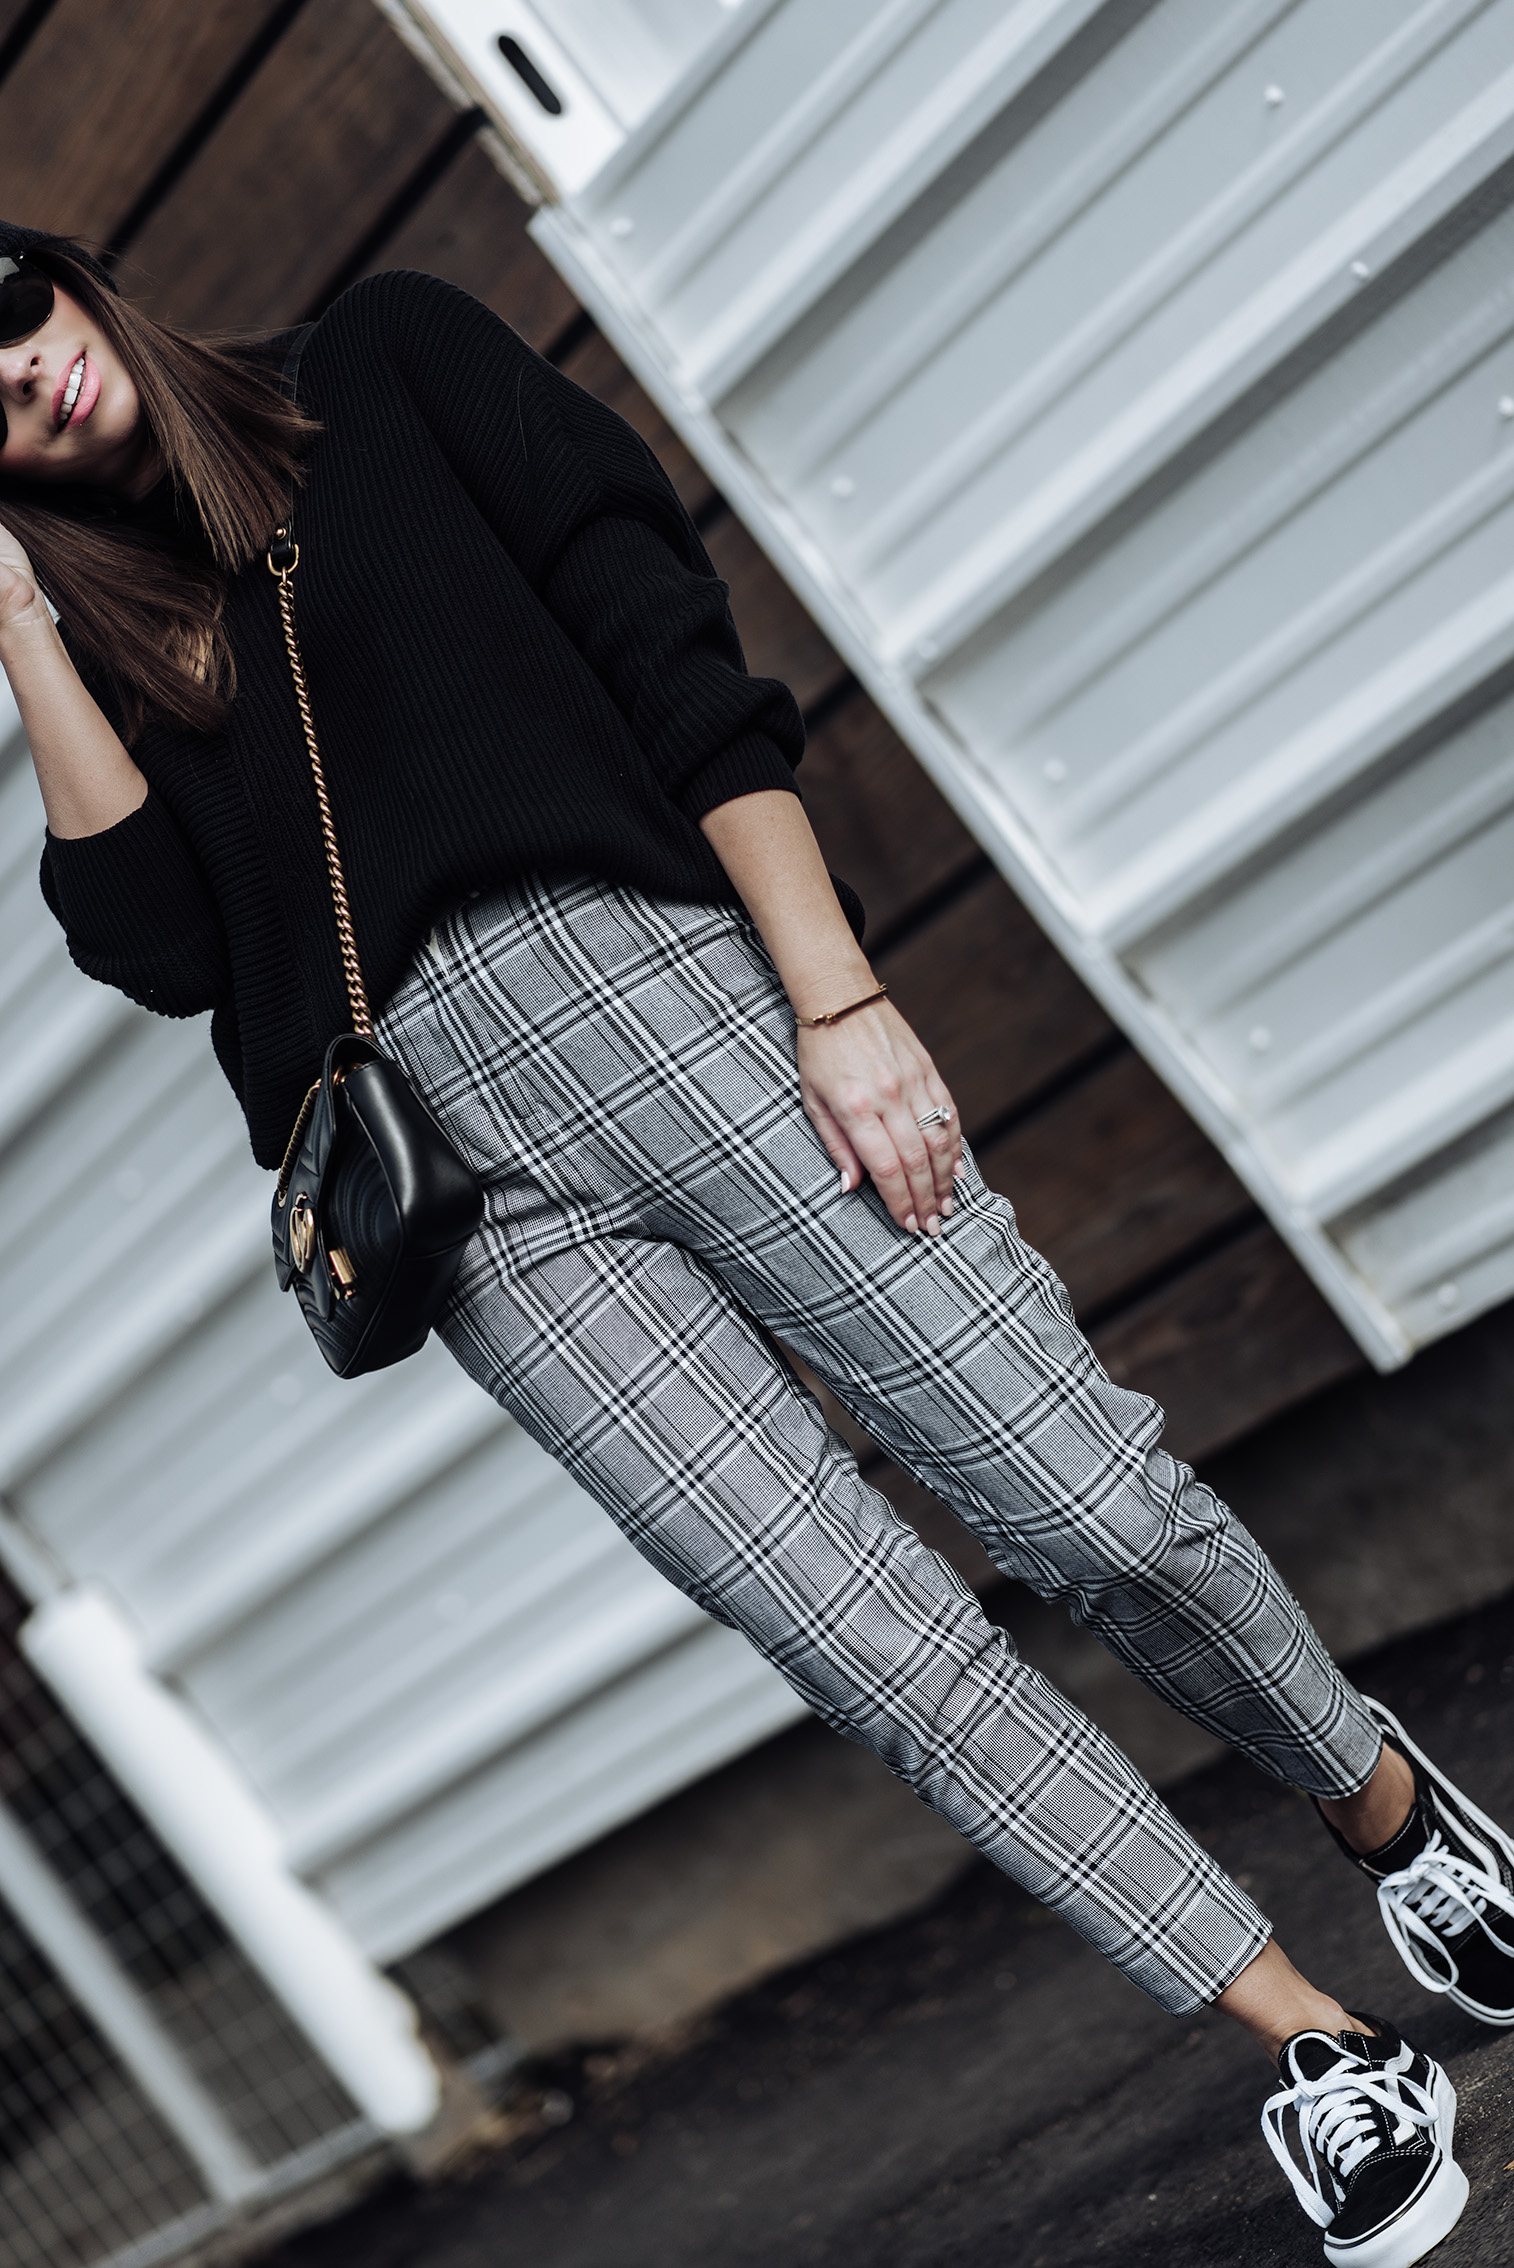 2 wardrobe staples you need in your closet this fall | Grey check print tailored pants (wearing a us size 4) | Fine knit sweater | Vans old skull sneakers | Gucci marmot bag | Monica Vinader Signature Large Bangle| Pom Pom Beanie #falloutfitideas2017 #falloutfits #vansoutfits #streetstyle